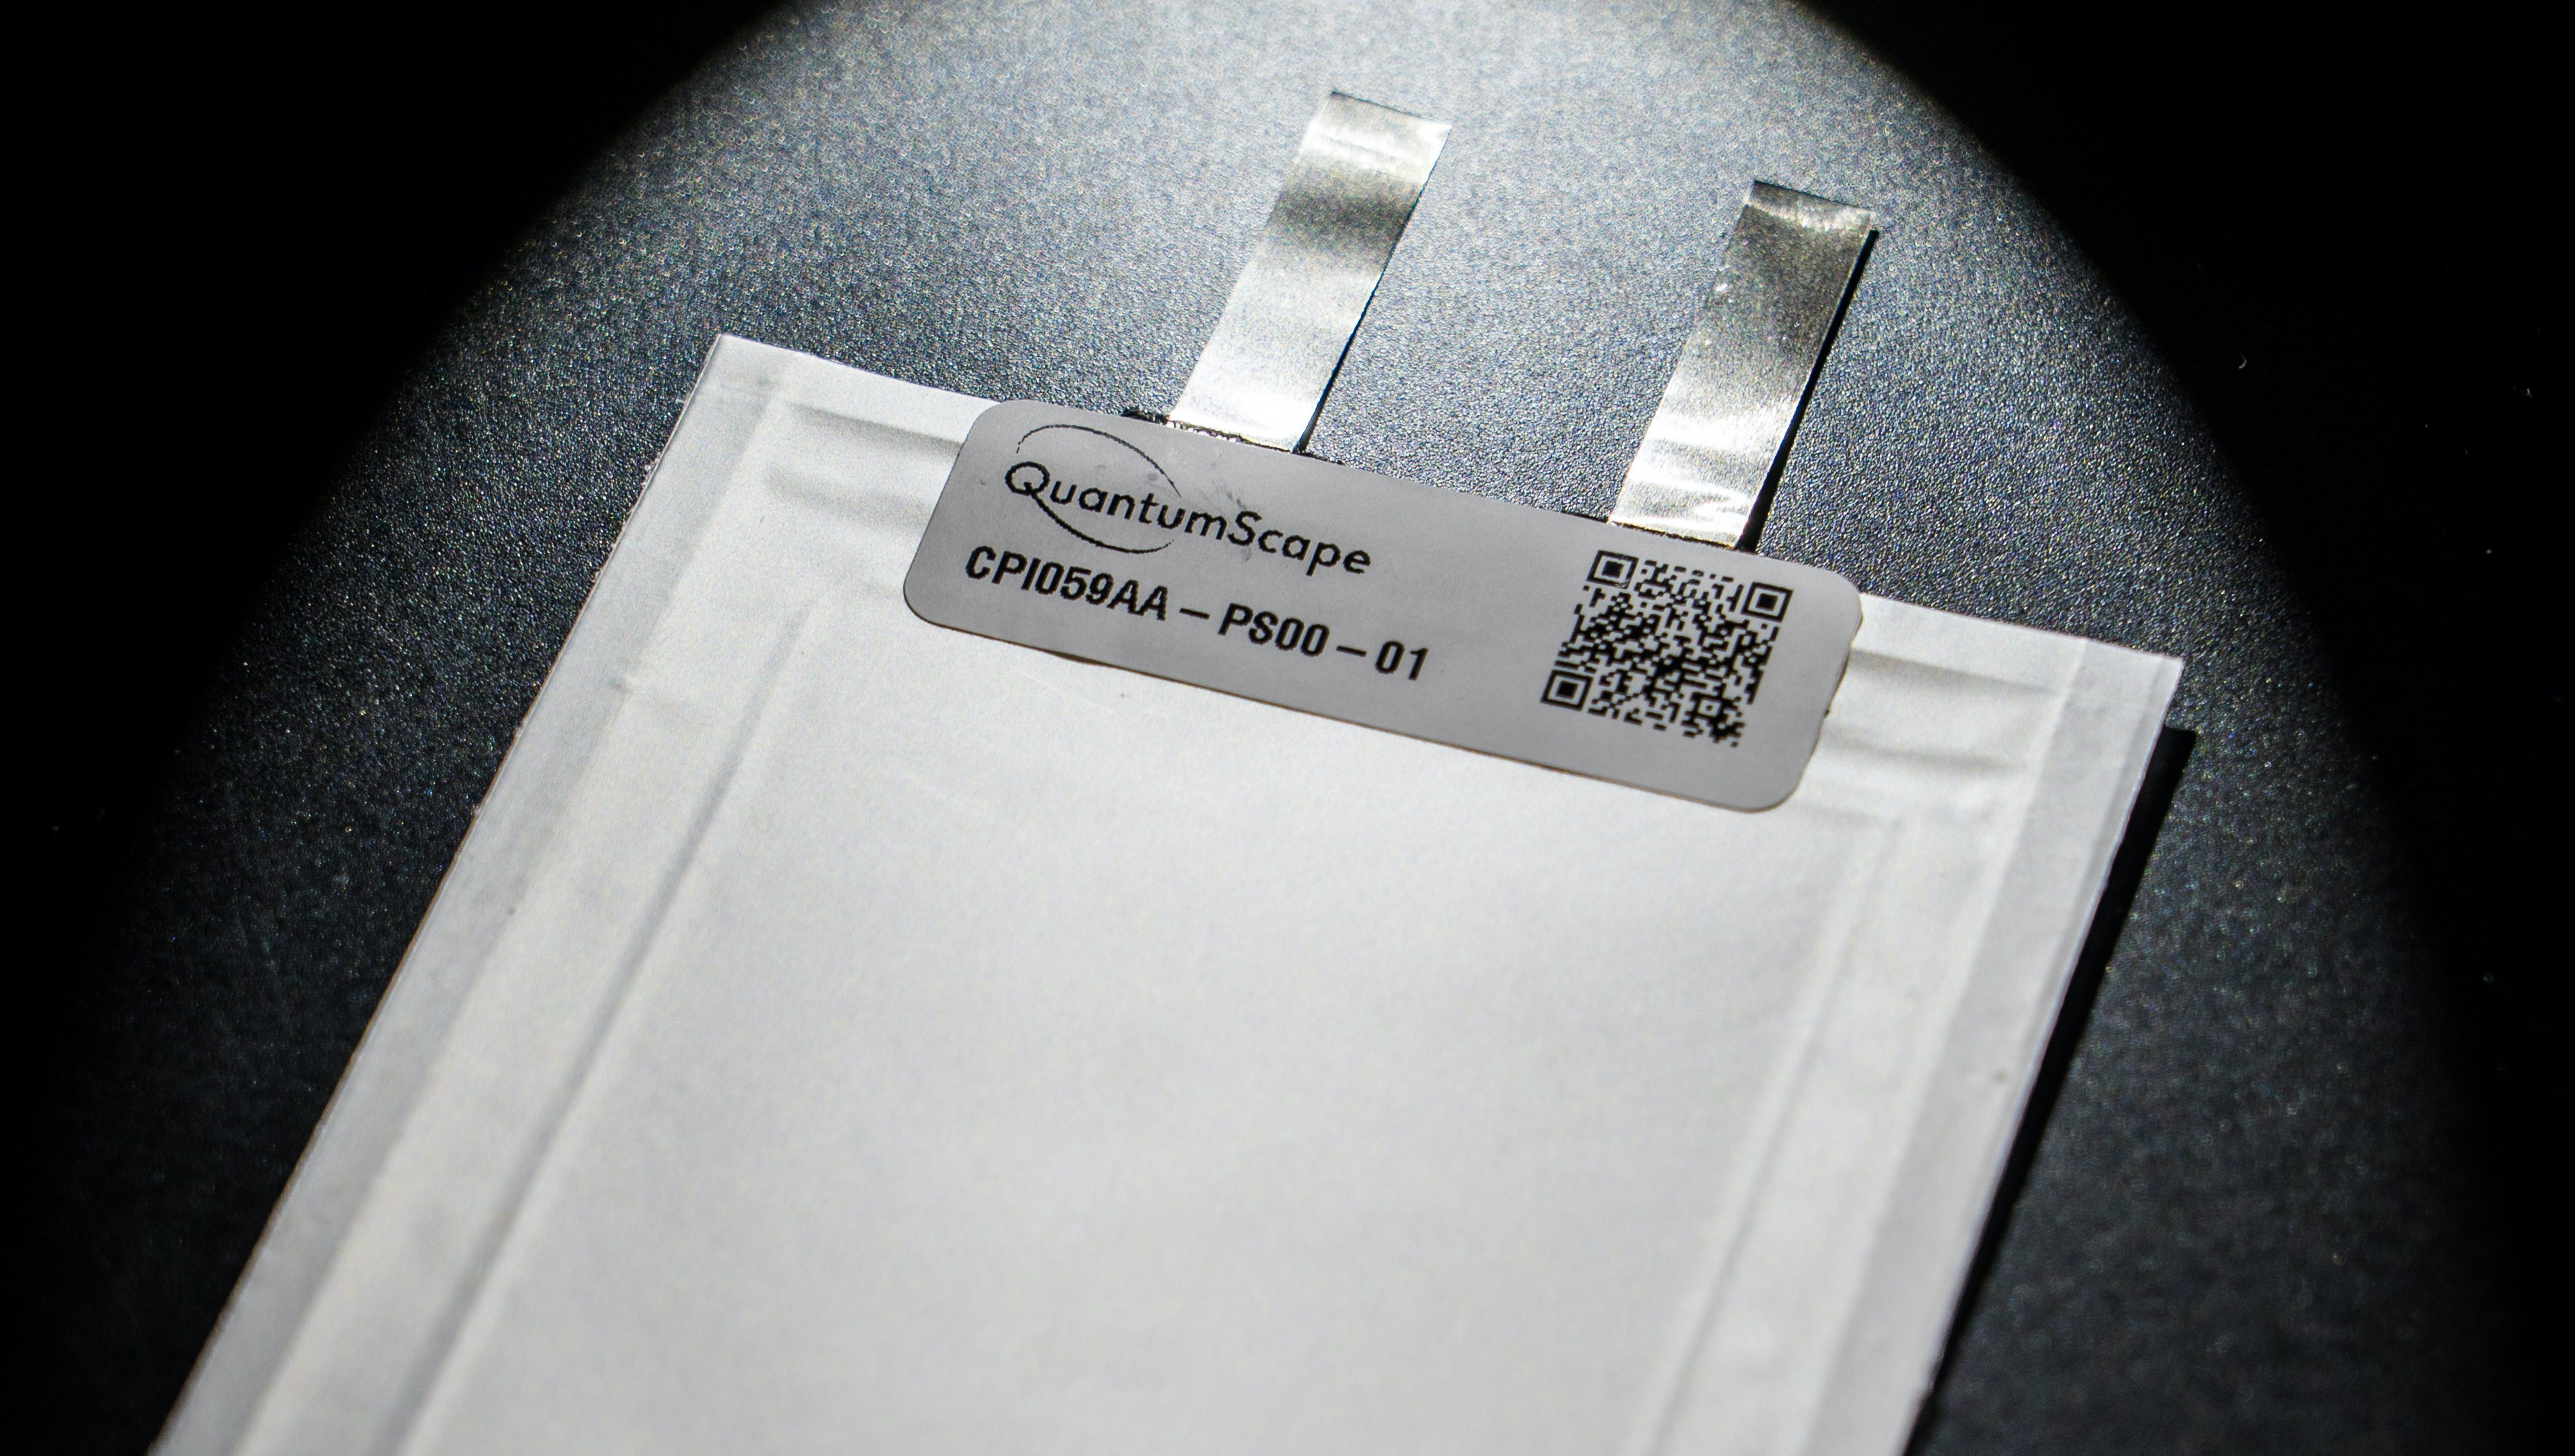 QuantumScape's single-layer, solid-state lithium-metal battery cell.